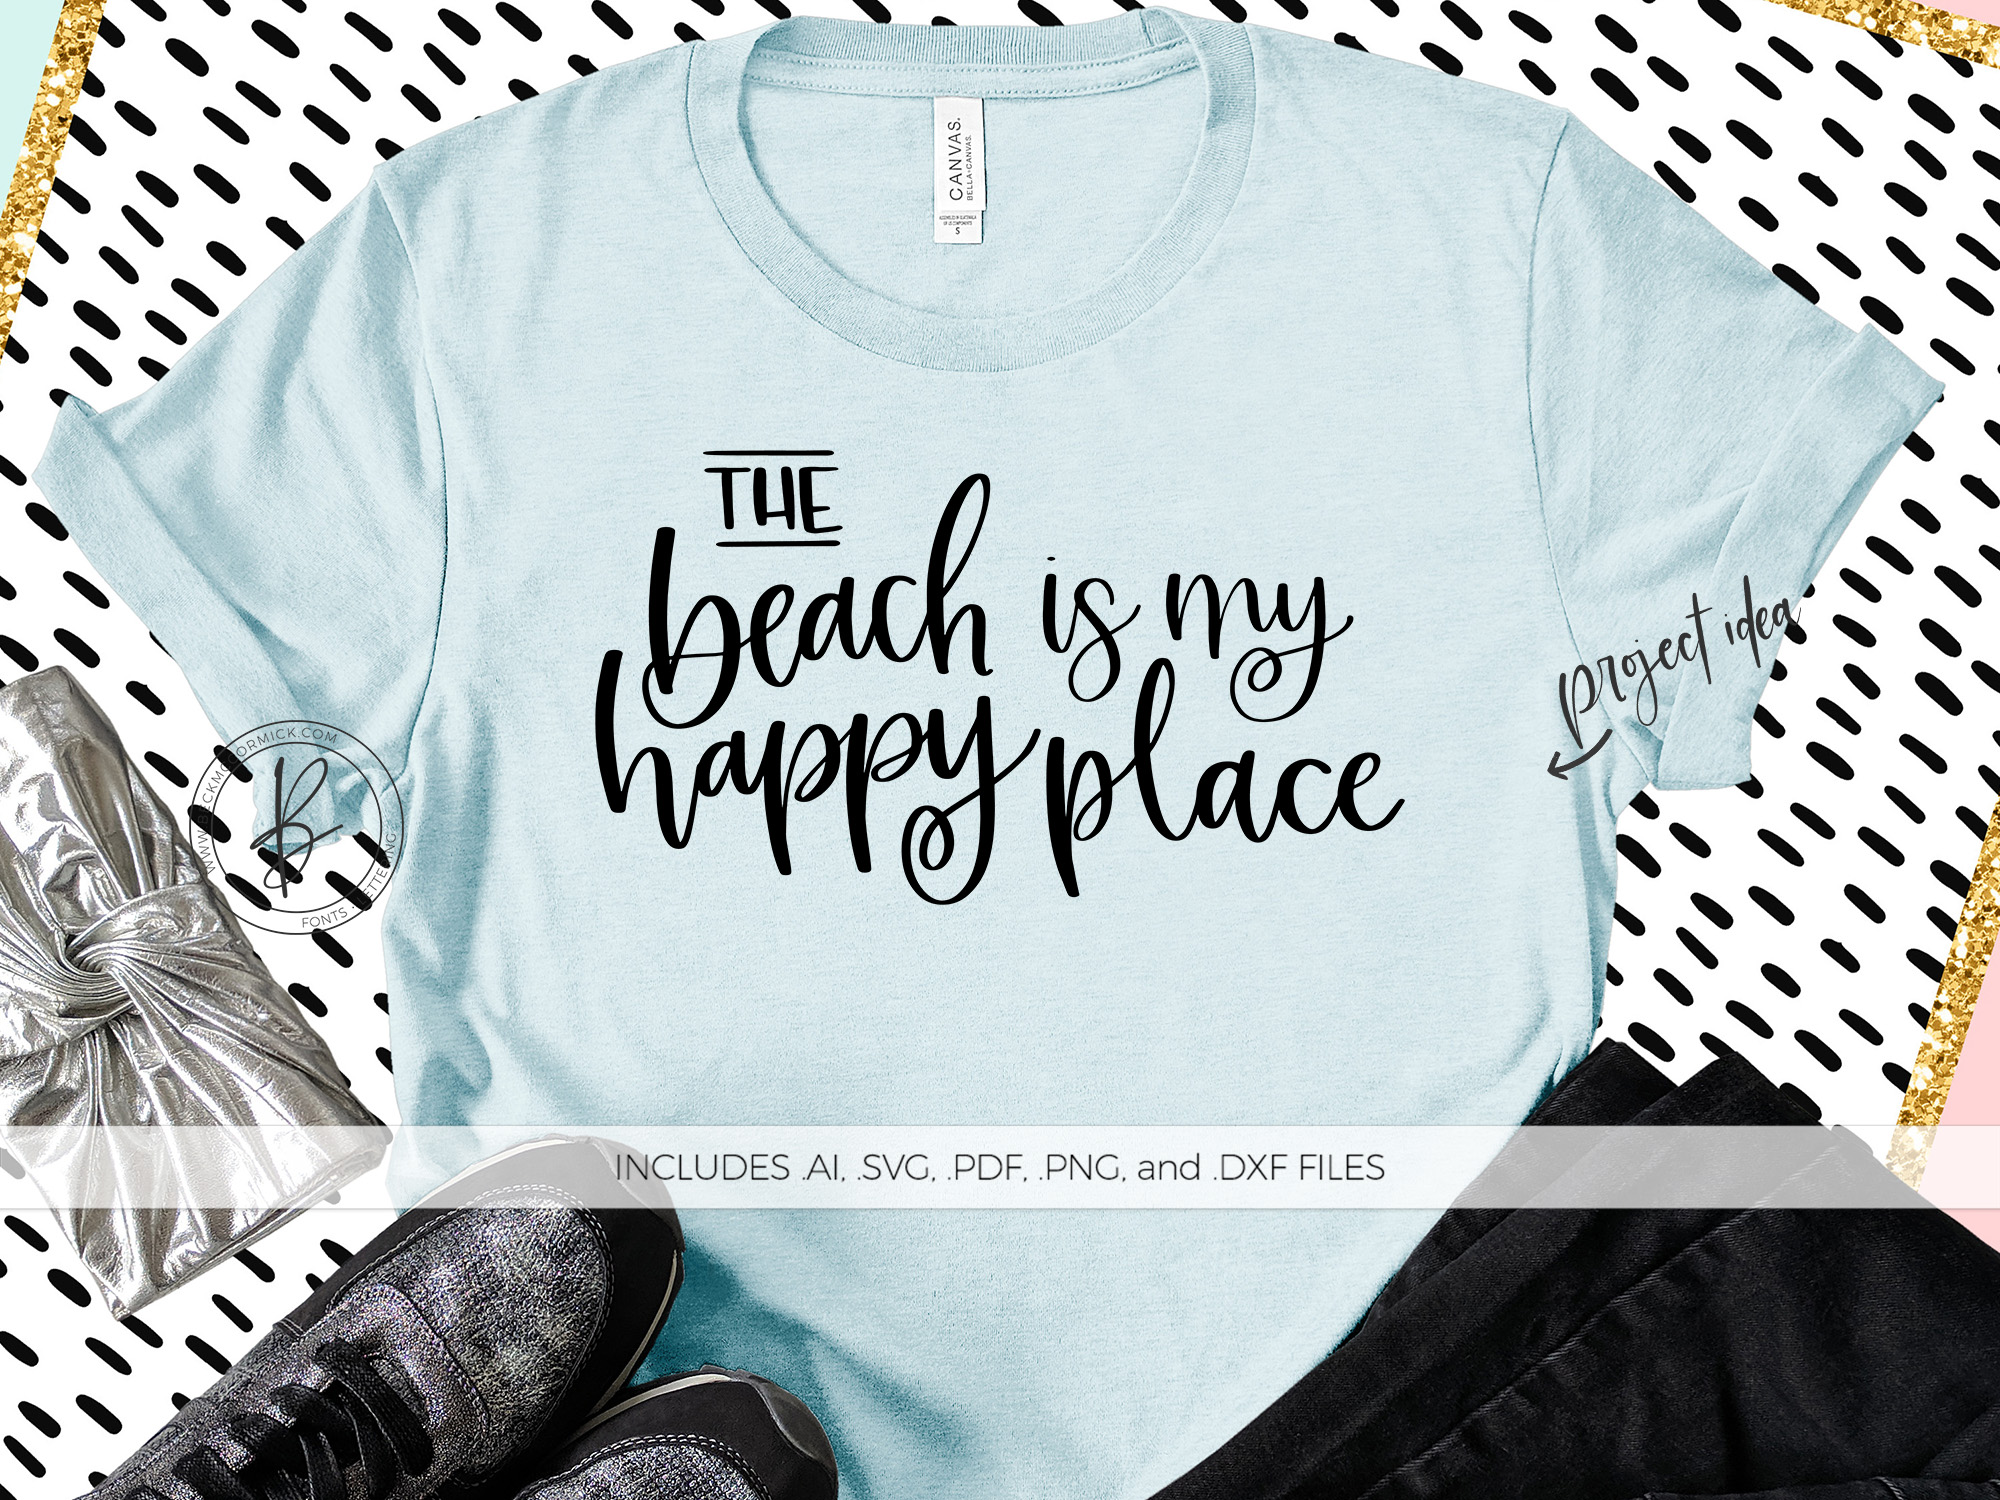 Download Free The Beach Is My Happy Place Graphic By Beckmccormick Creative for Cricut Explore, Silhouette and other cutting machines.